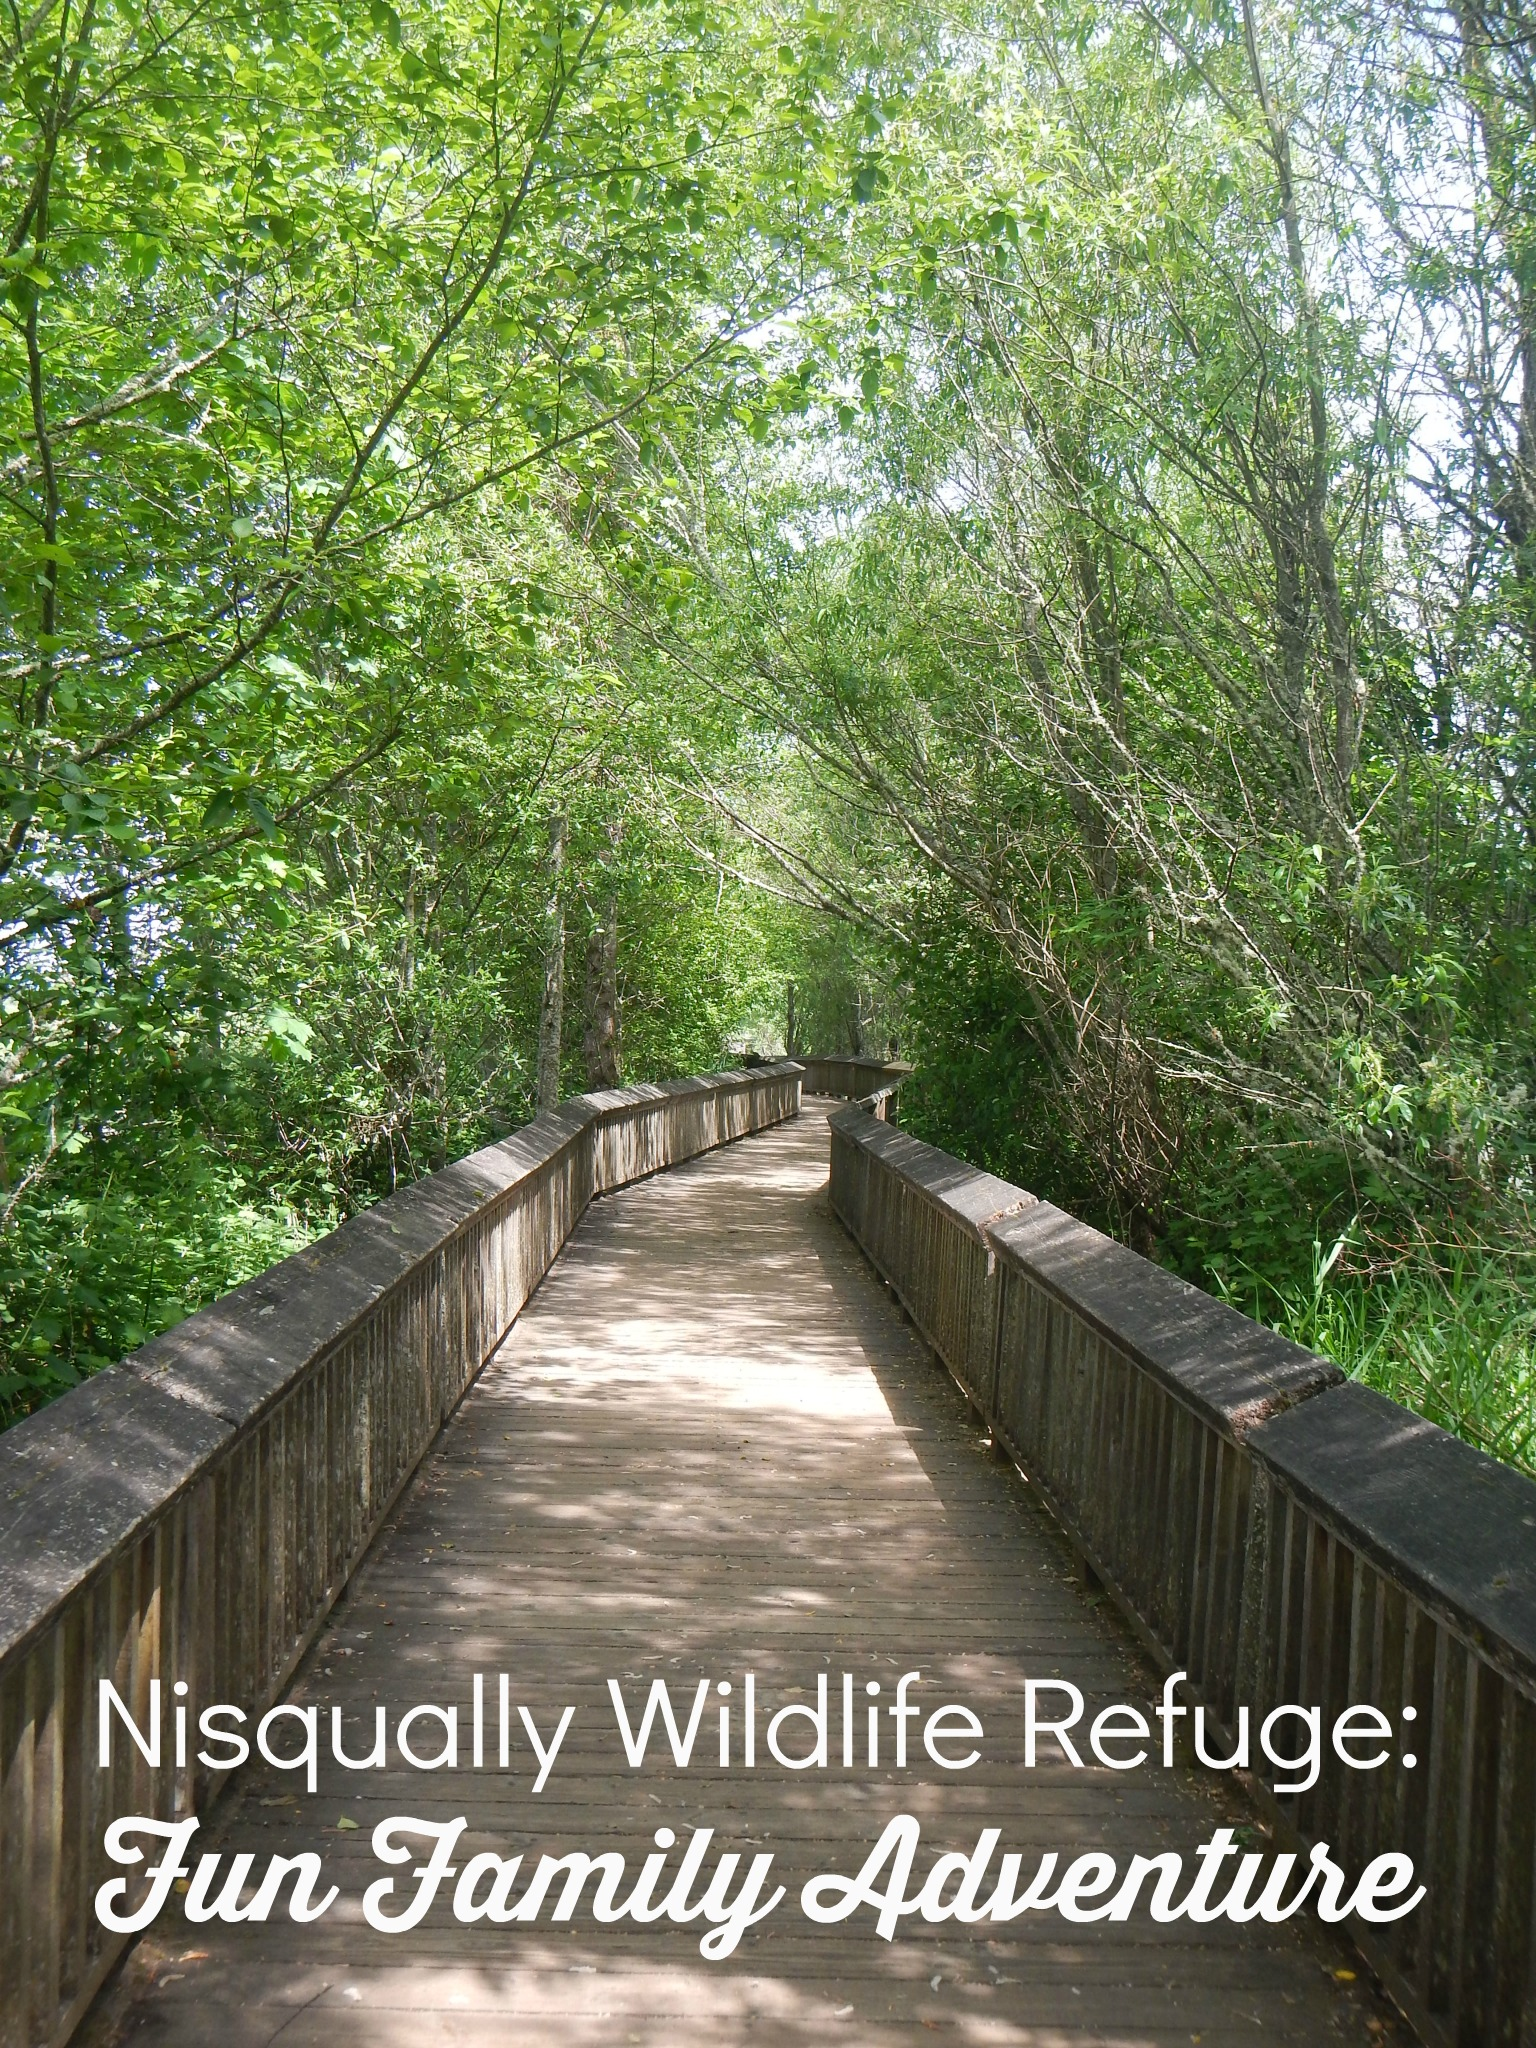 Nisqually Wildlife Refuge (WA): fun place to visit with the family!